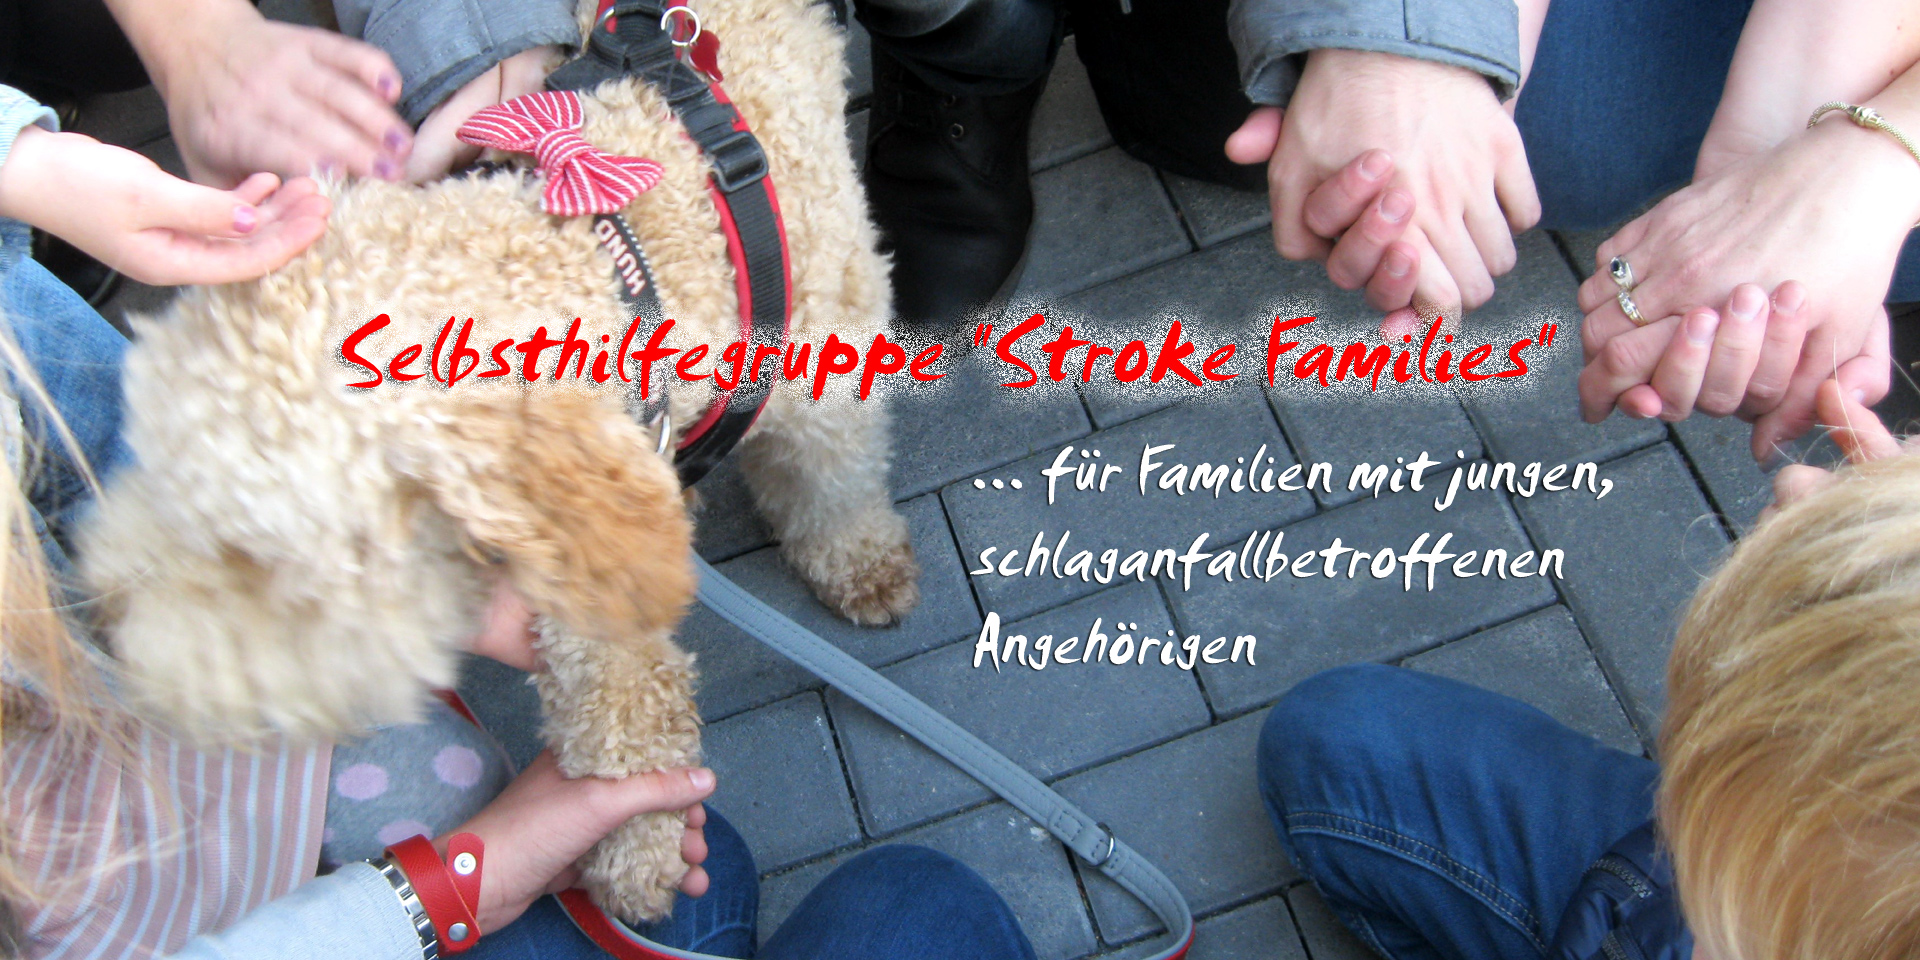 "Selbsthilfegruppe ""Stroke Families"""